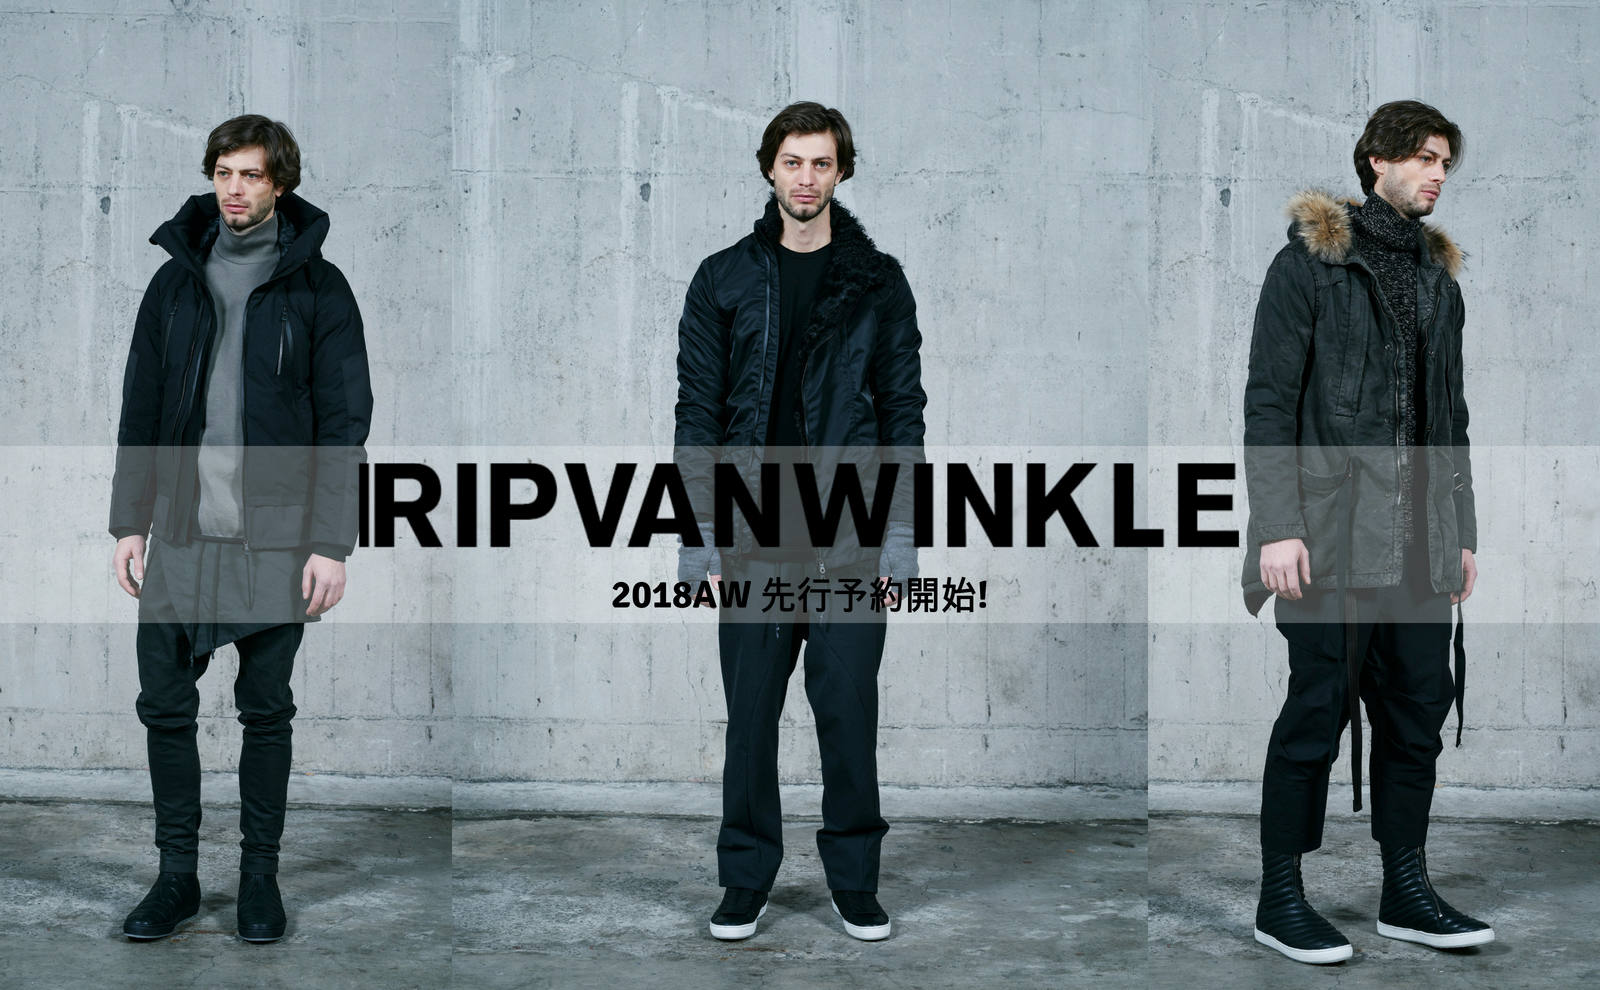 RIPVANWINKLE 2018AW 公式 LOOKBOOK